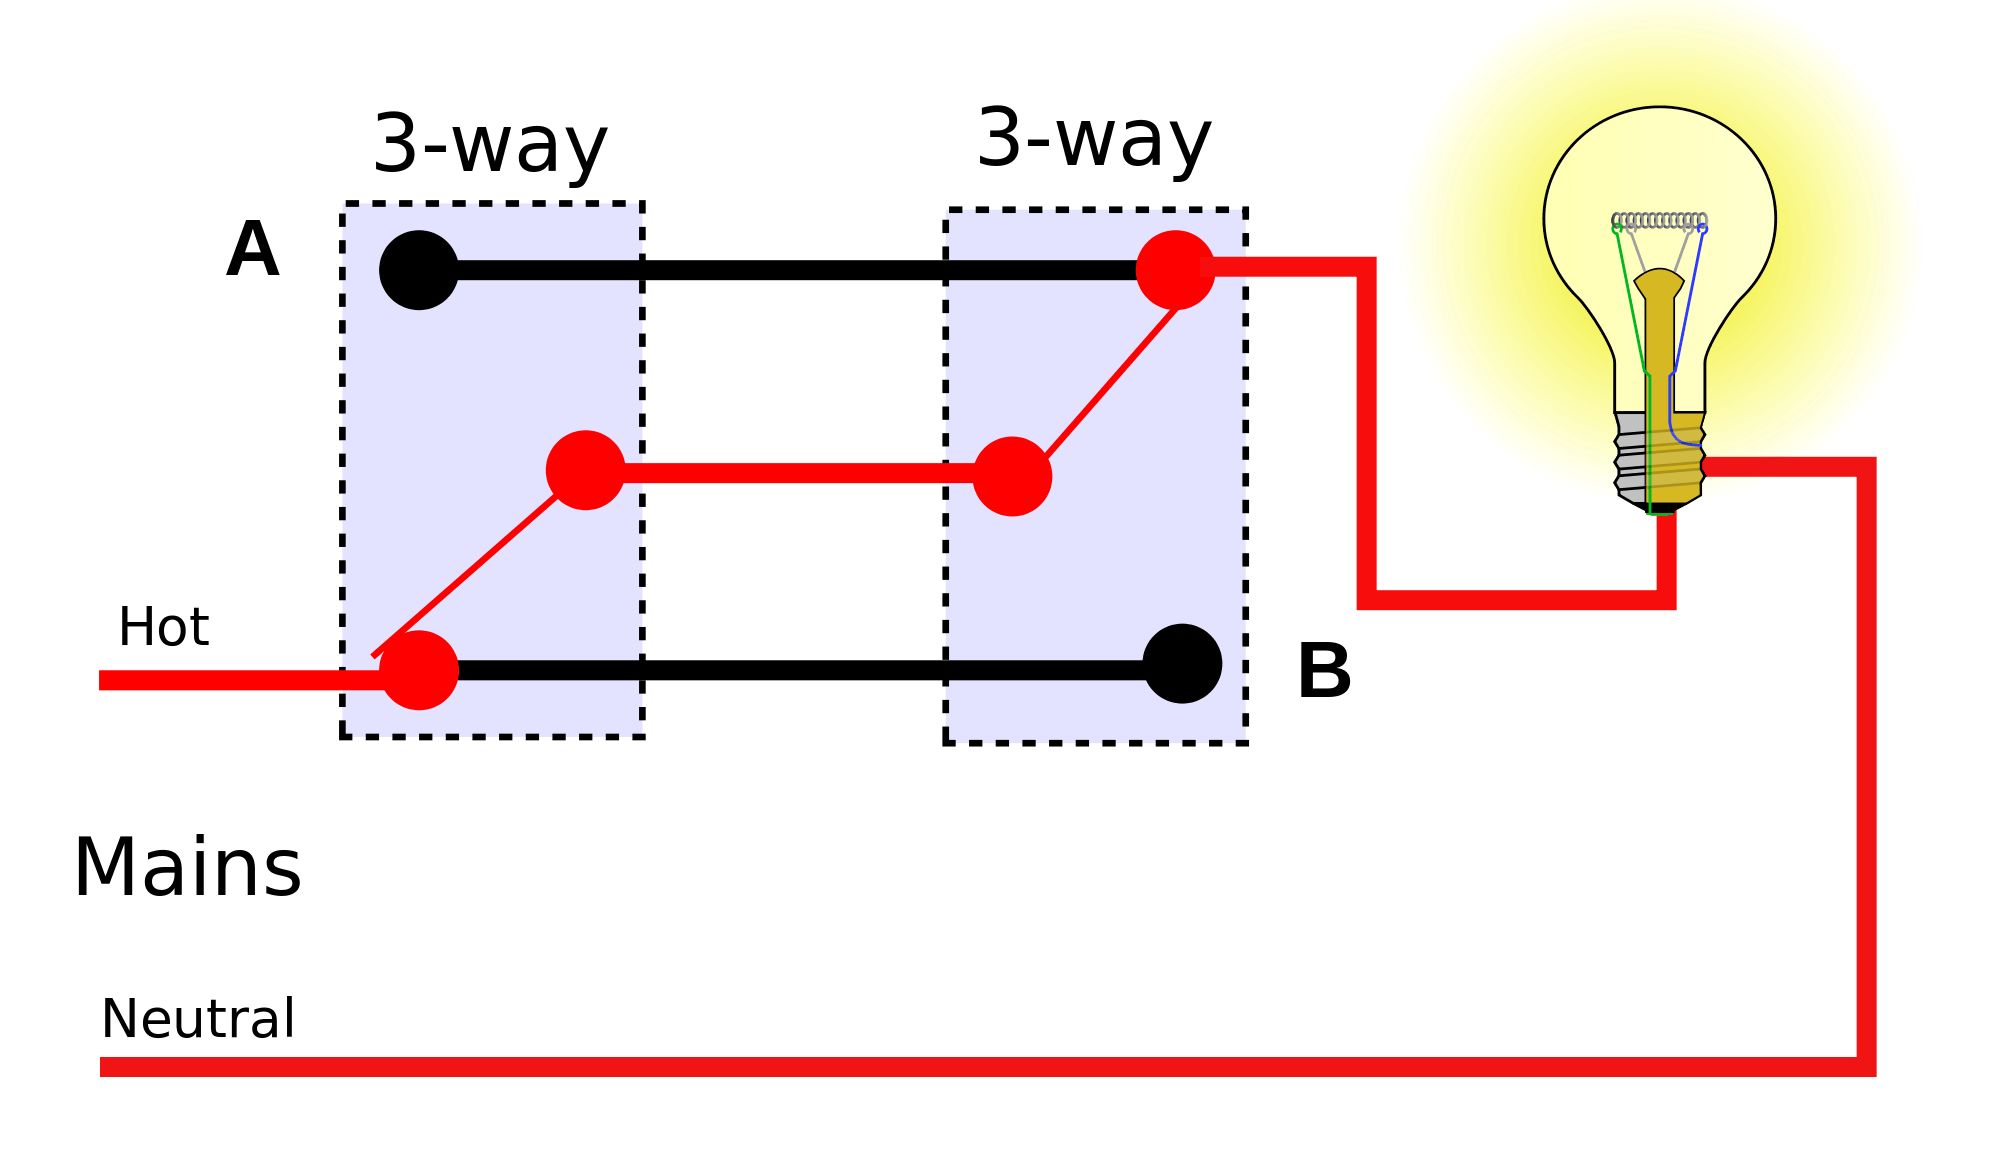 Wiring diagram california 3 way switch free download wiring diagram free download wiring diagram electrical coast 3 way does this conform with code home of asfbconference2016 Choice Image